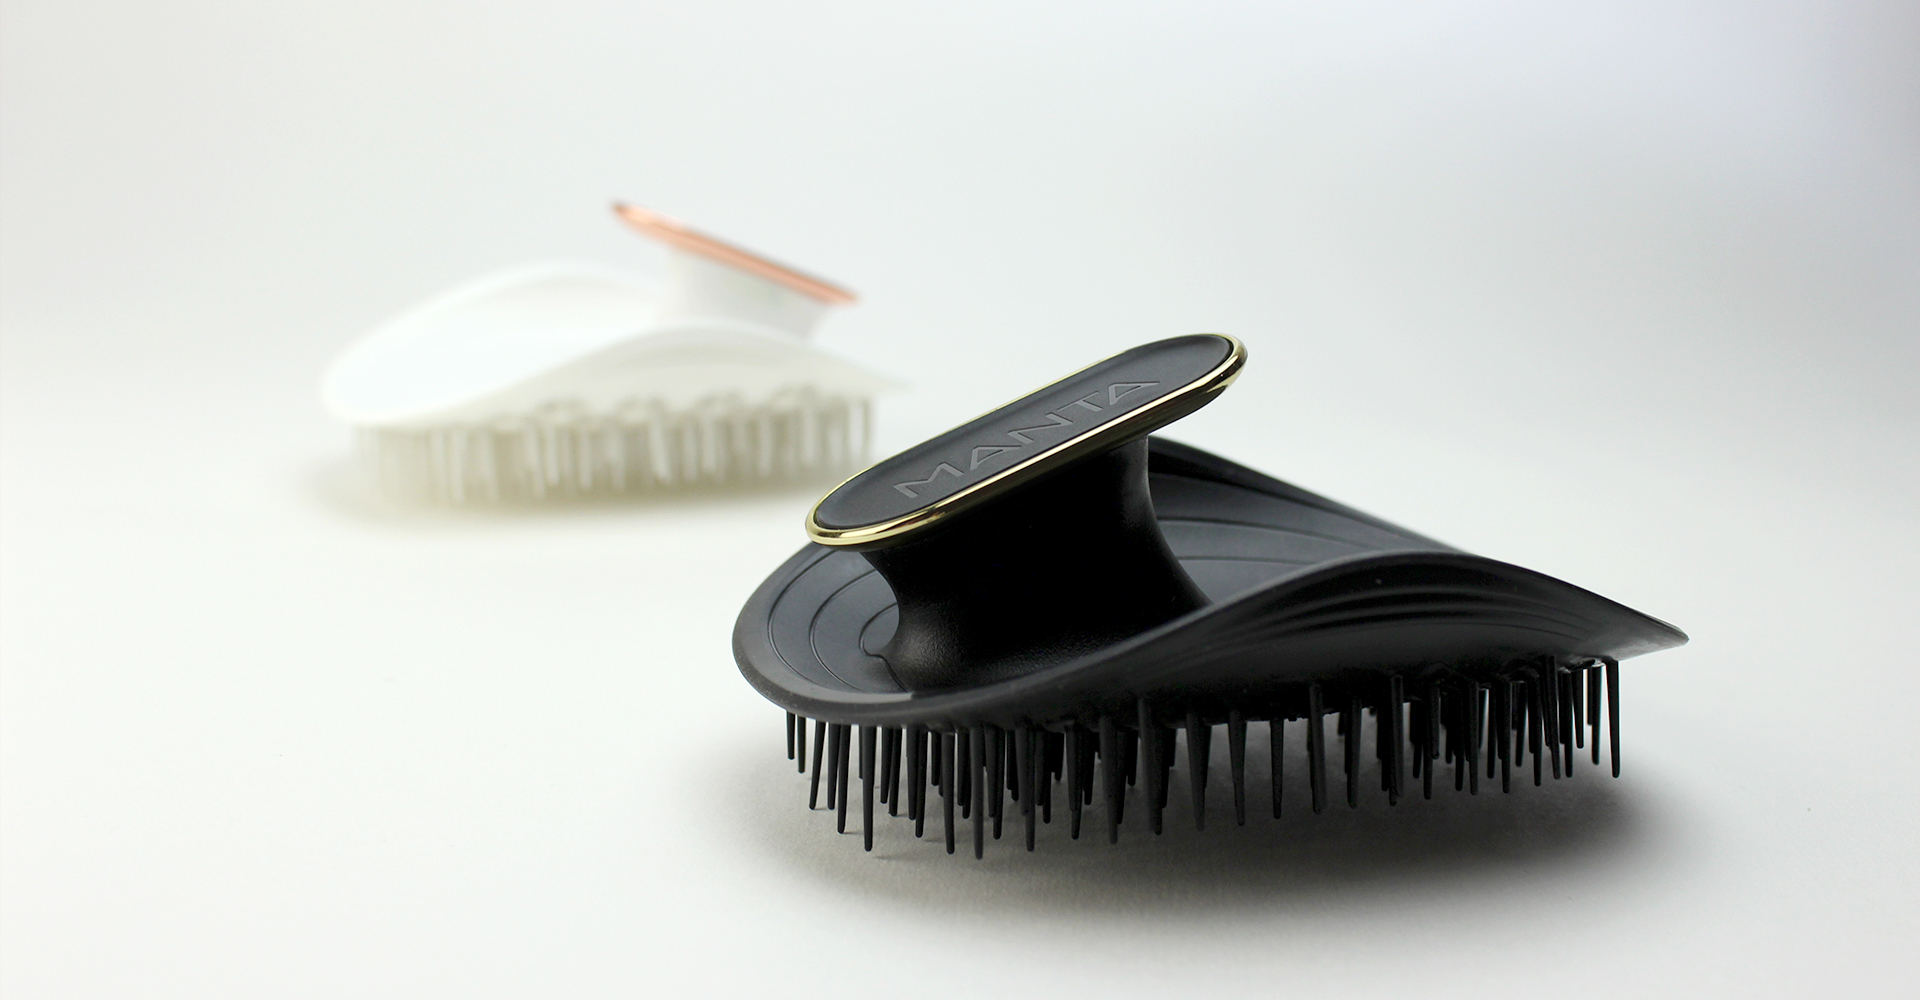 Manta - Curventa - hairbrush - black - white - brush - gold - rose gold - haircare - materials - cmf - flexible